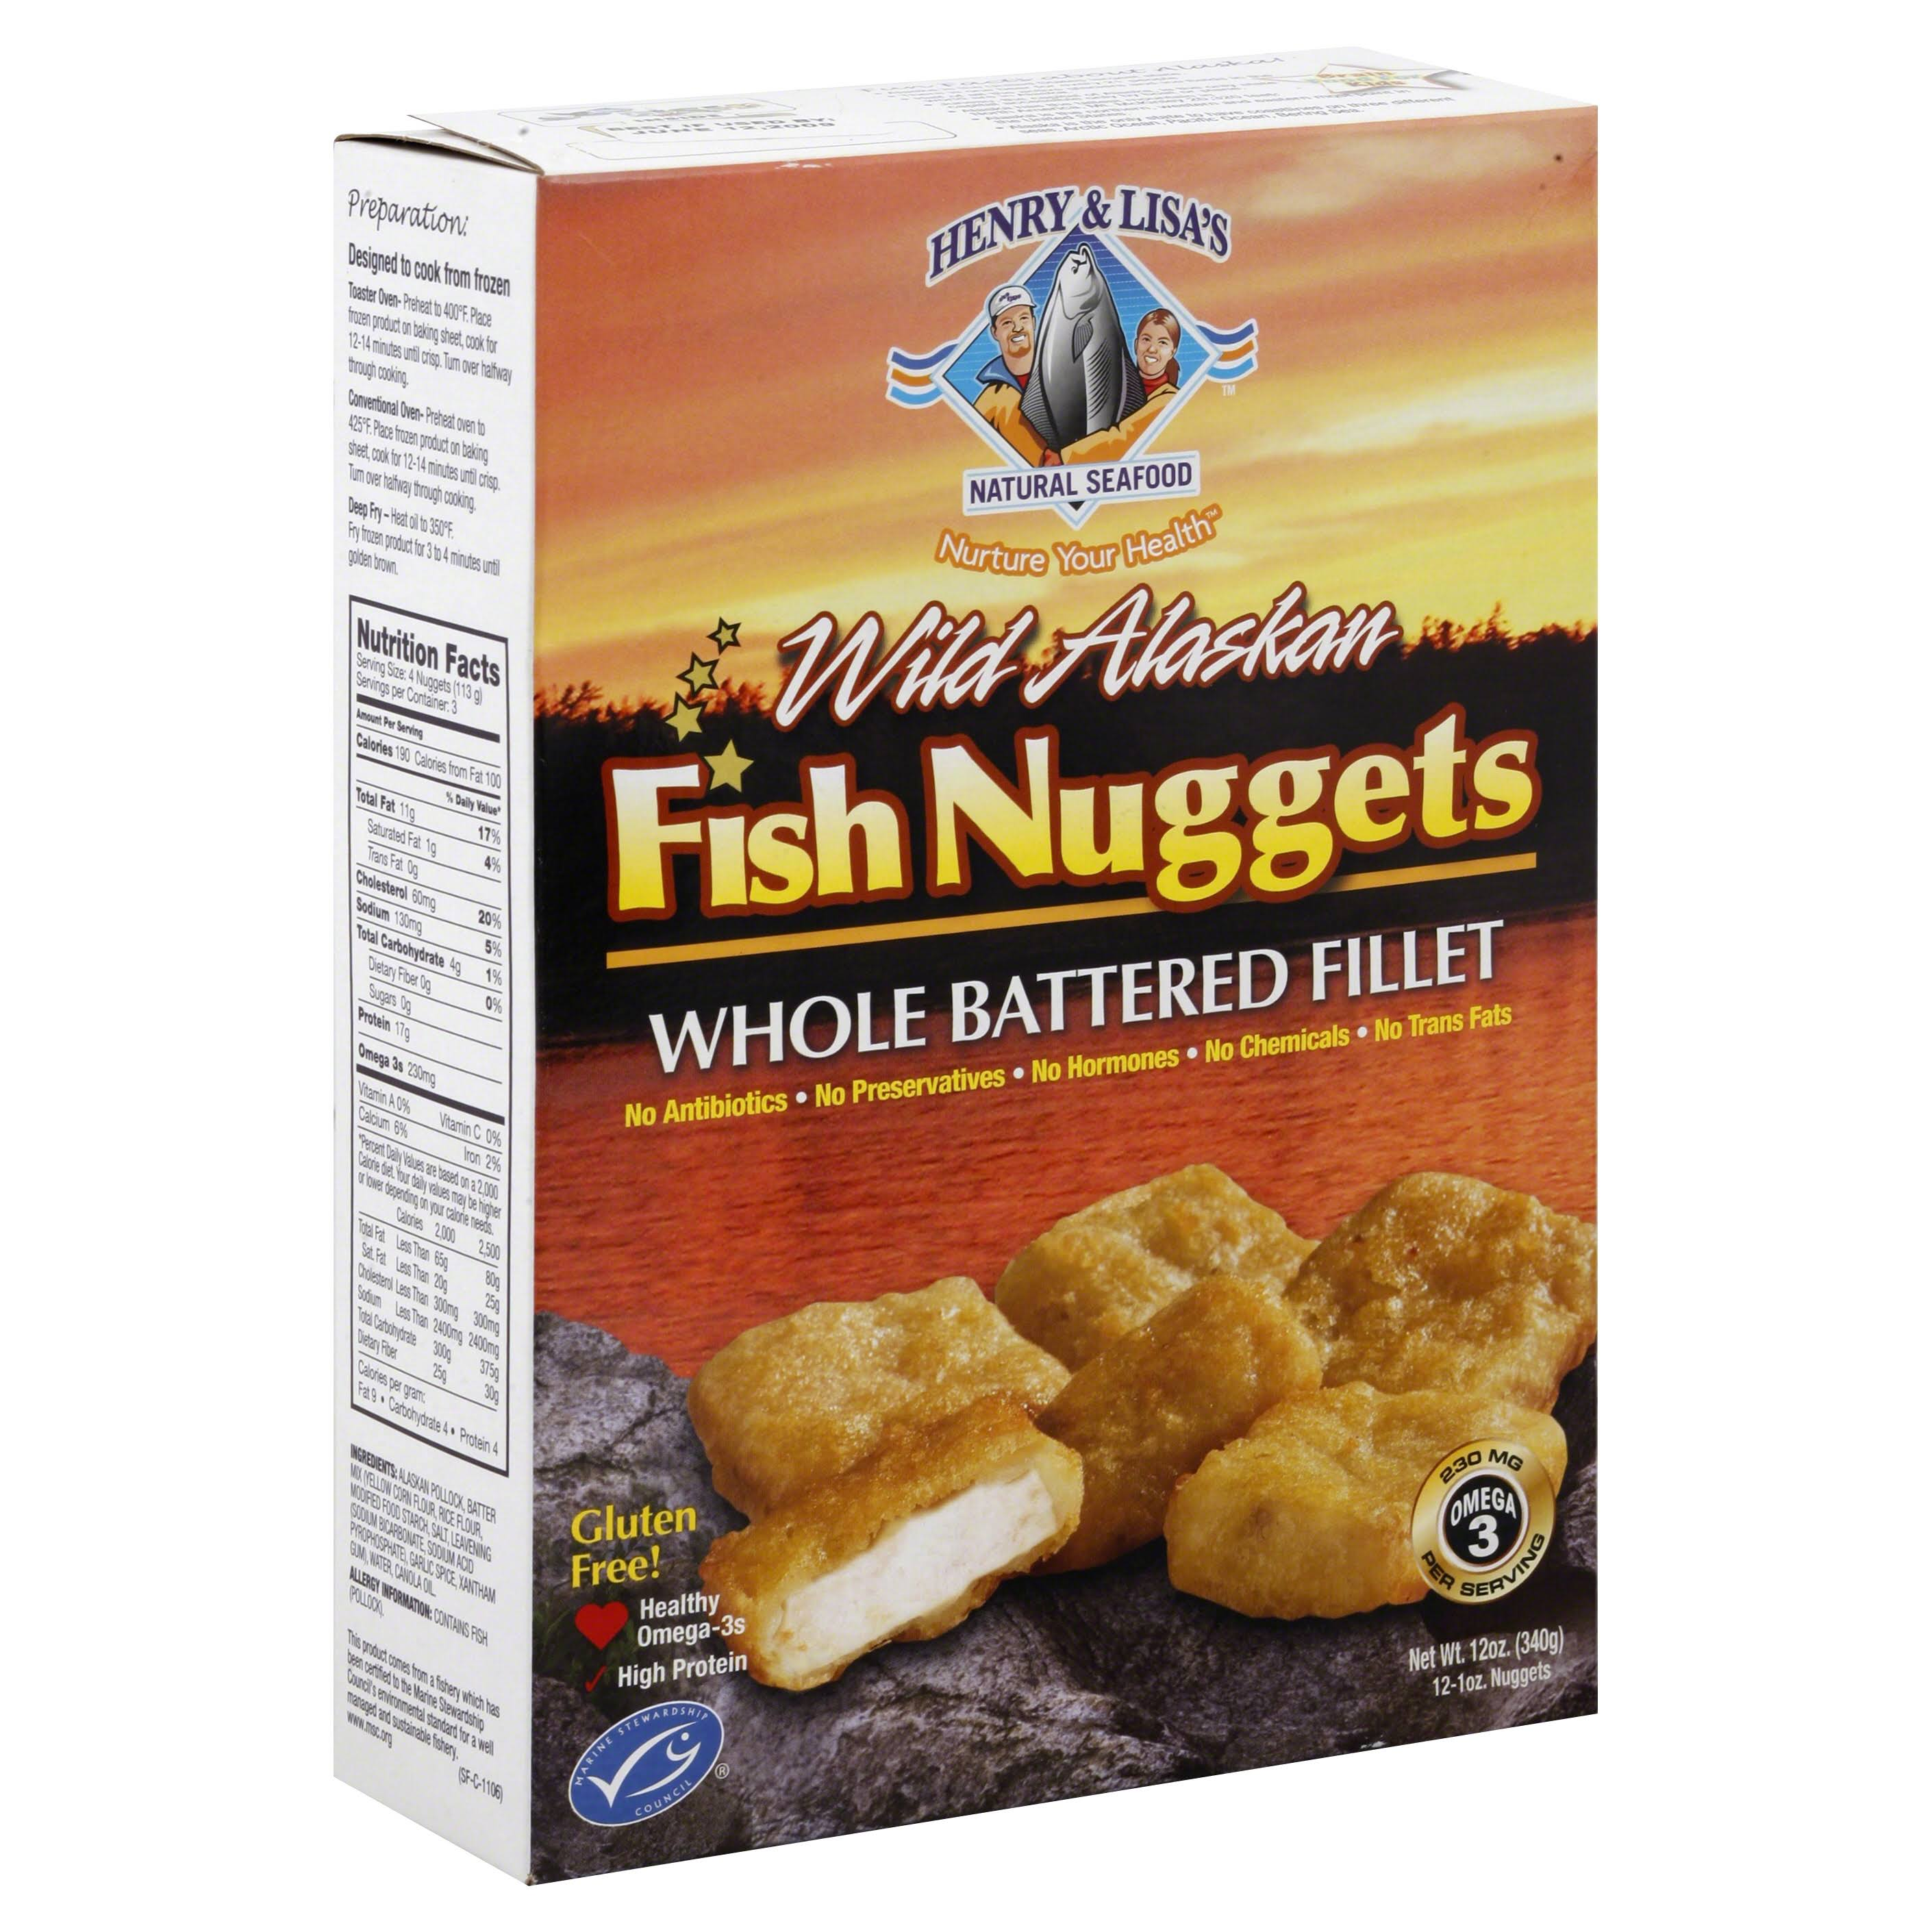 Henry and Lisas Gluten Free Natural Seafood Wild Alaskan Fish Nugget - 12oz, 6pk